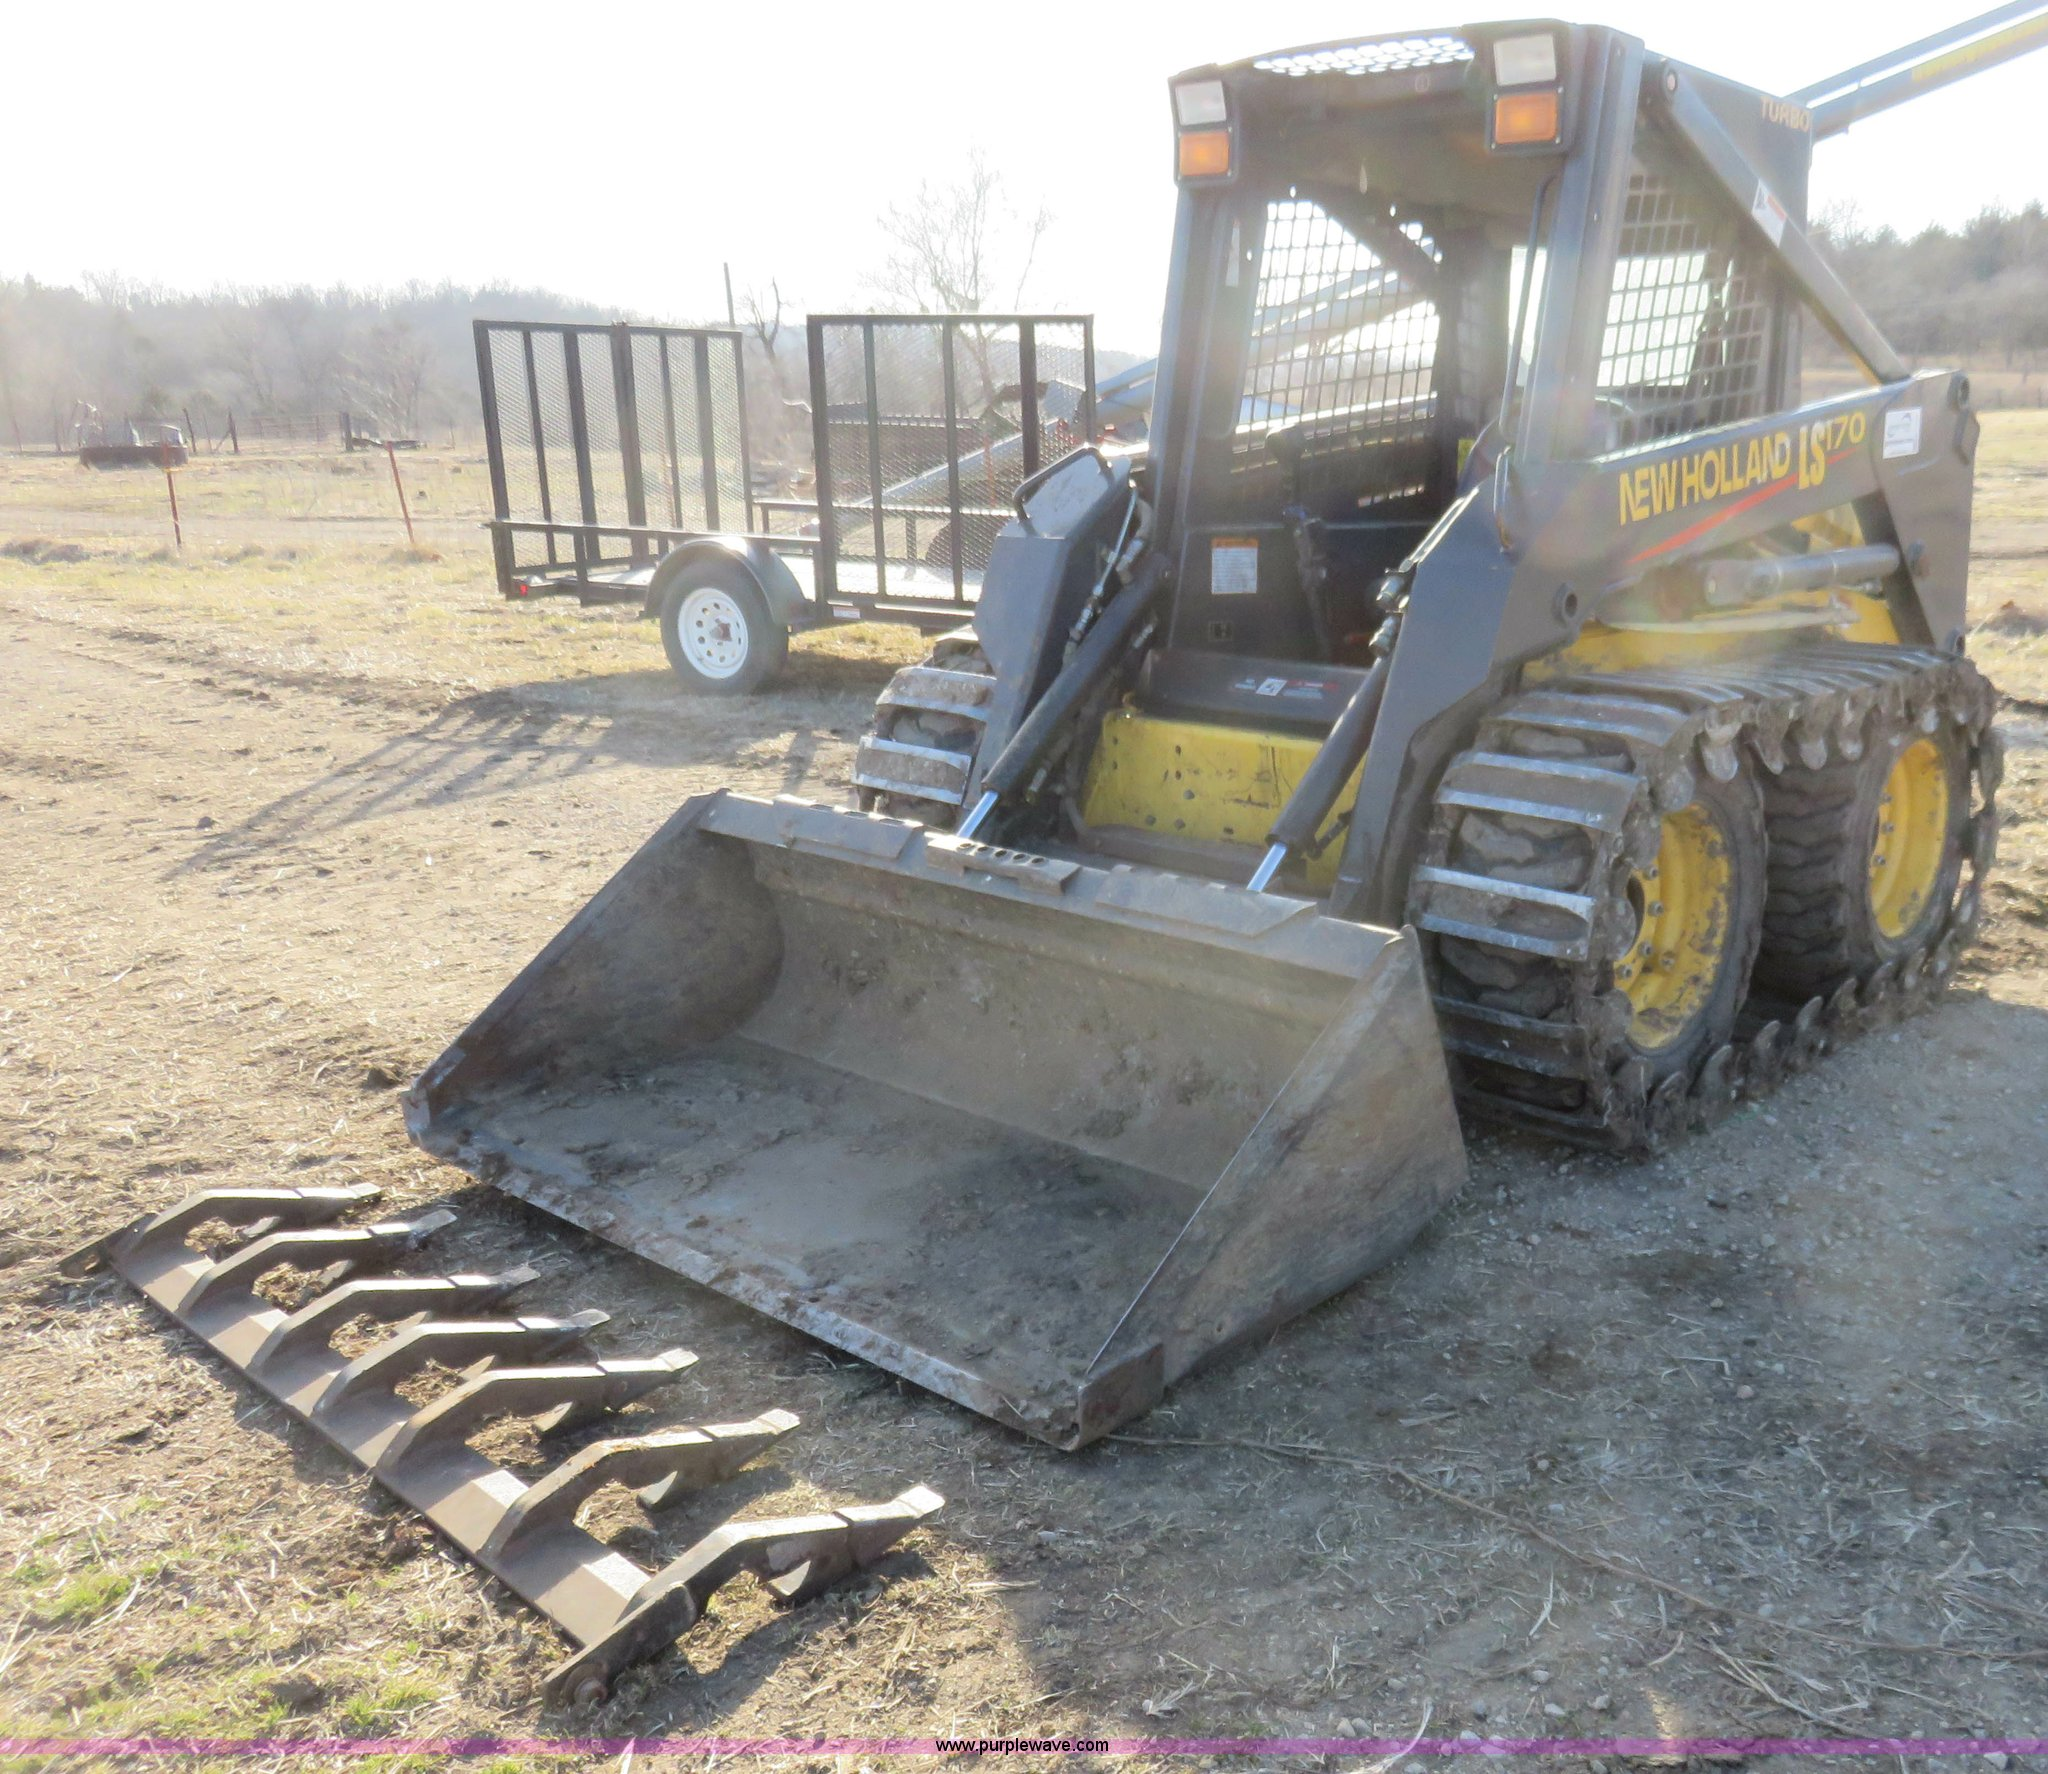 ... Holland LS170 skid steer Full size in new window ...